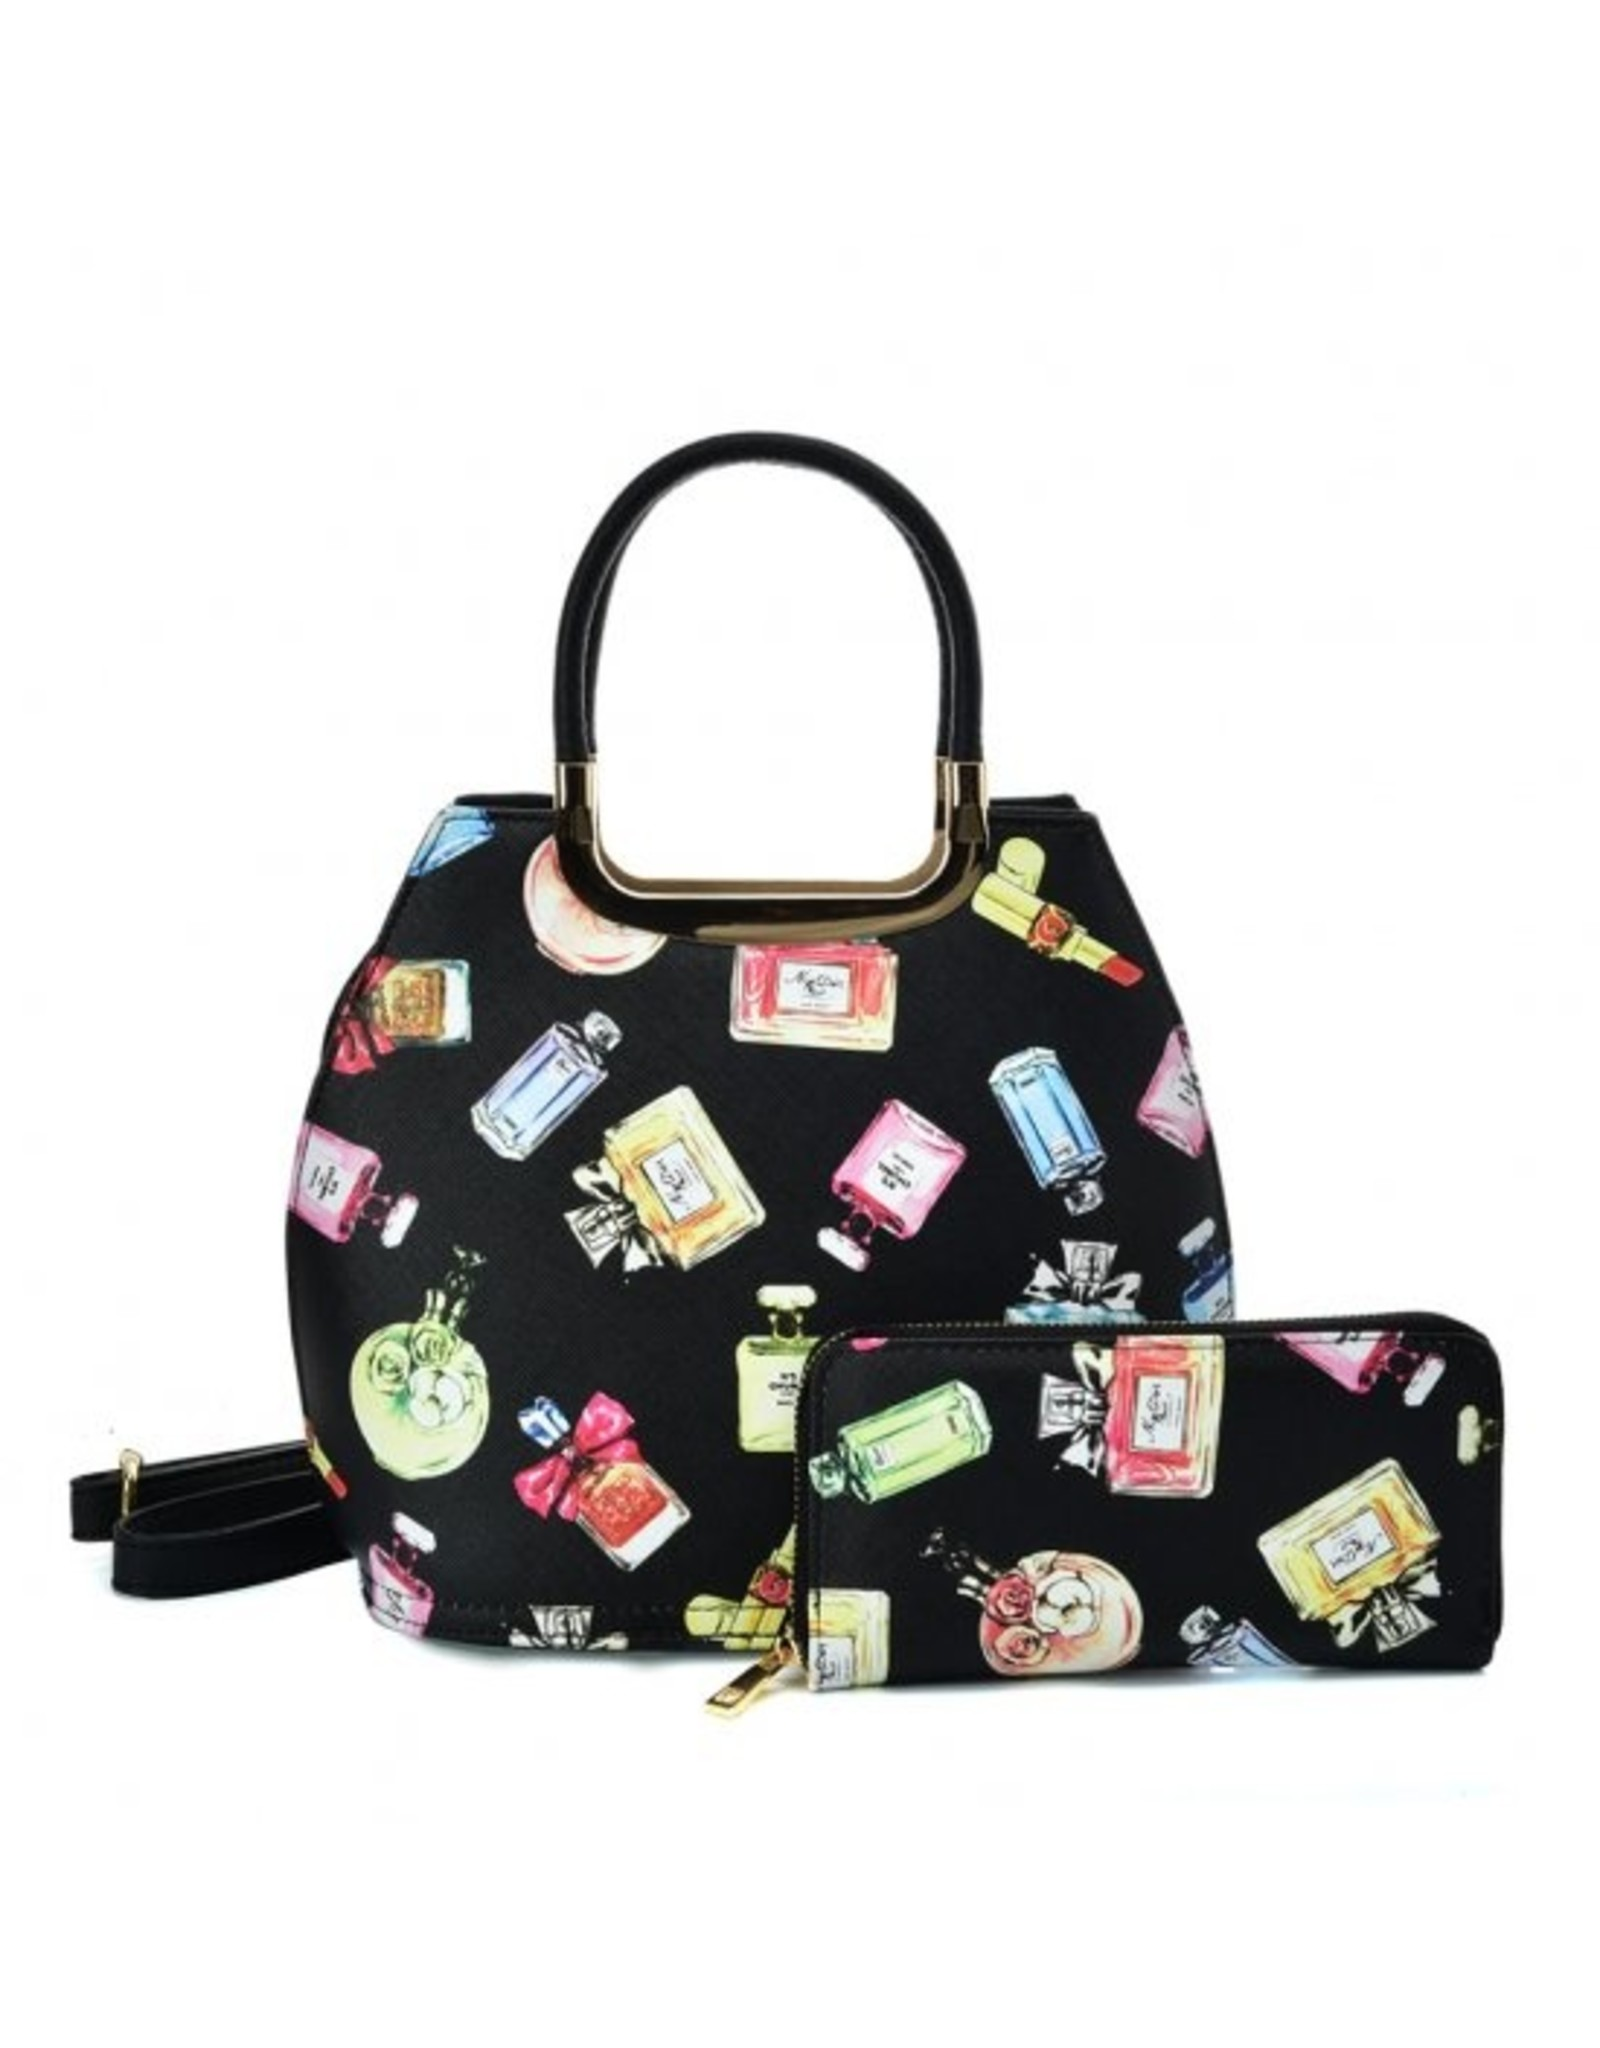 Trukado Fashion bags - Handbag with perfume bottles design Le Parfum black